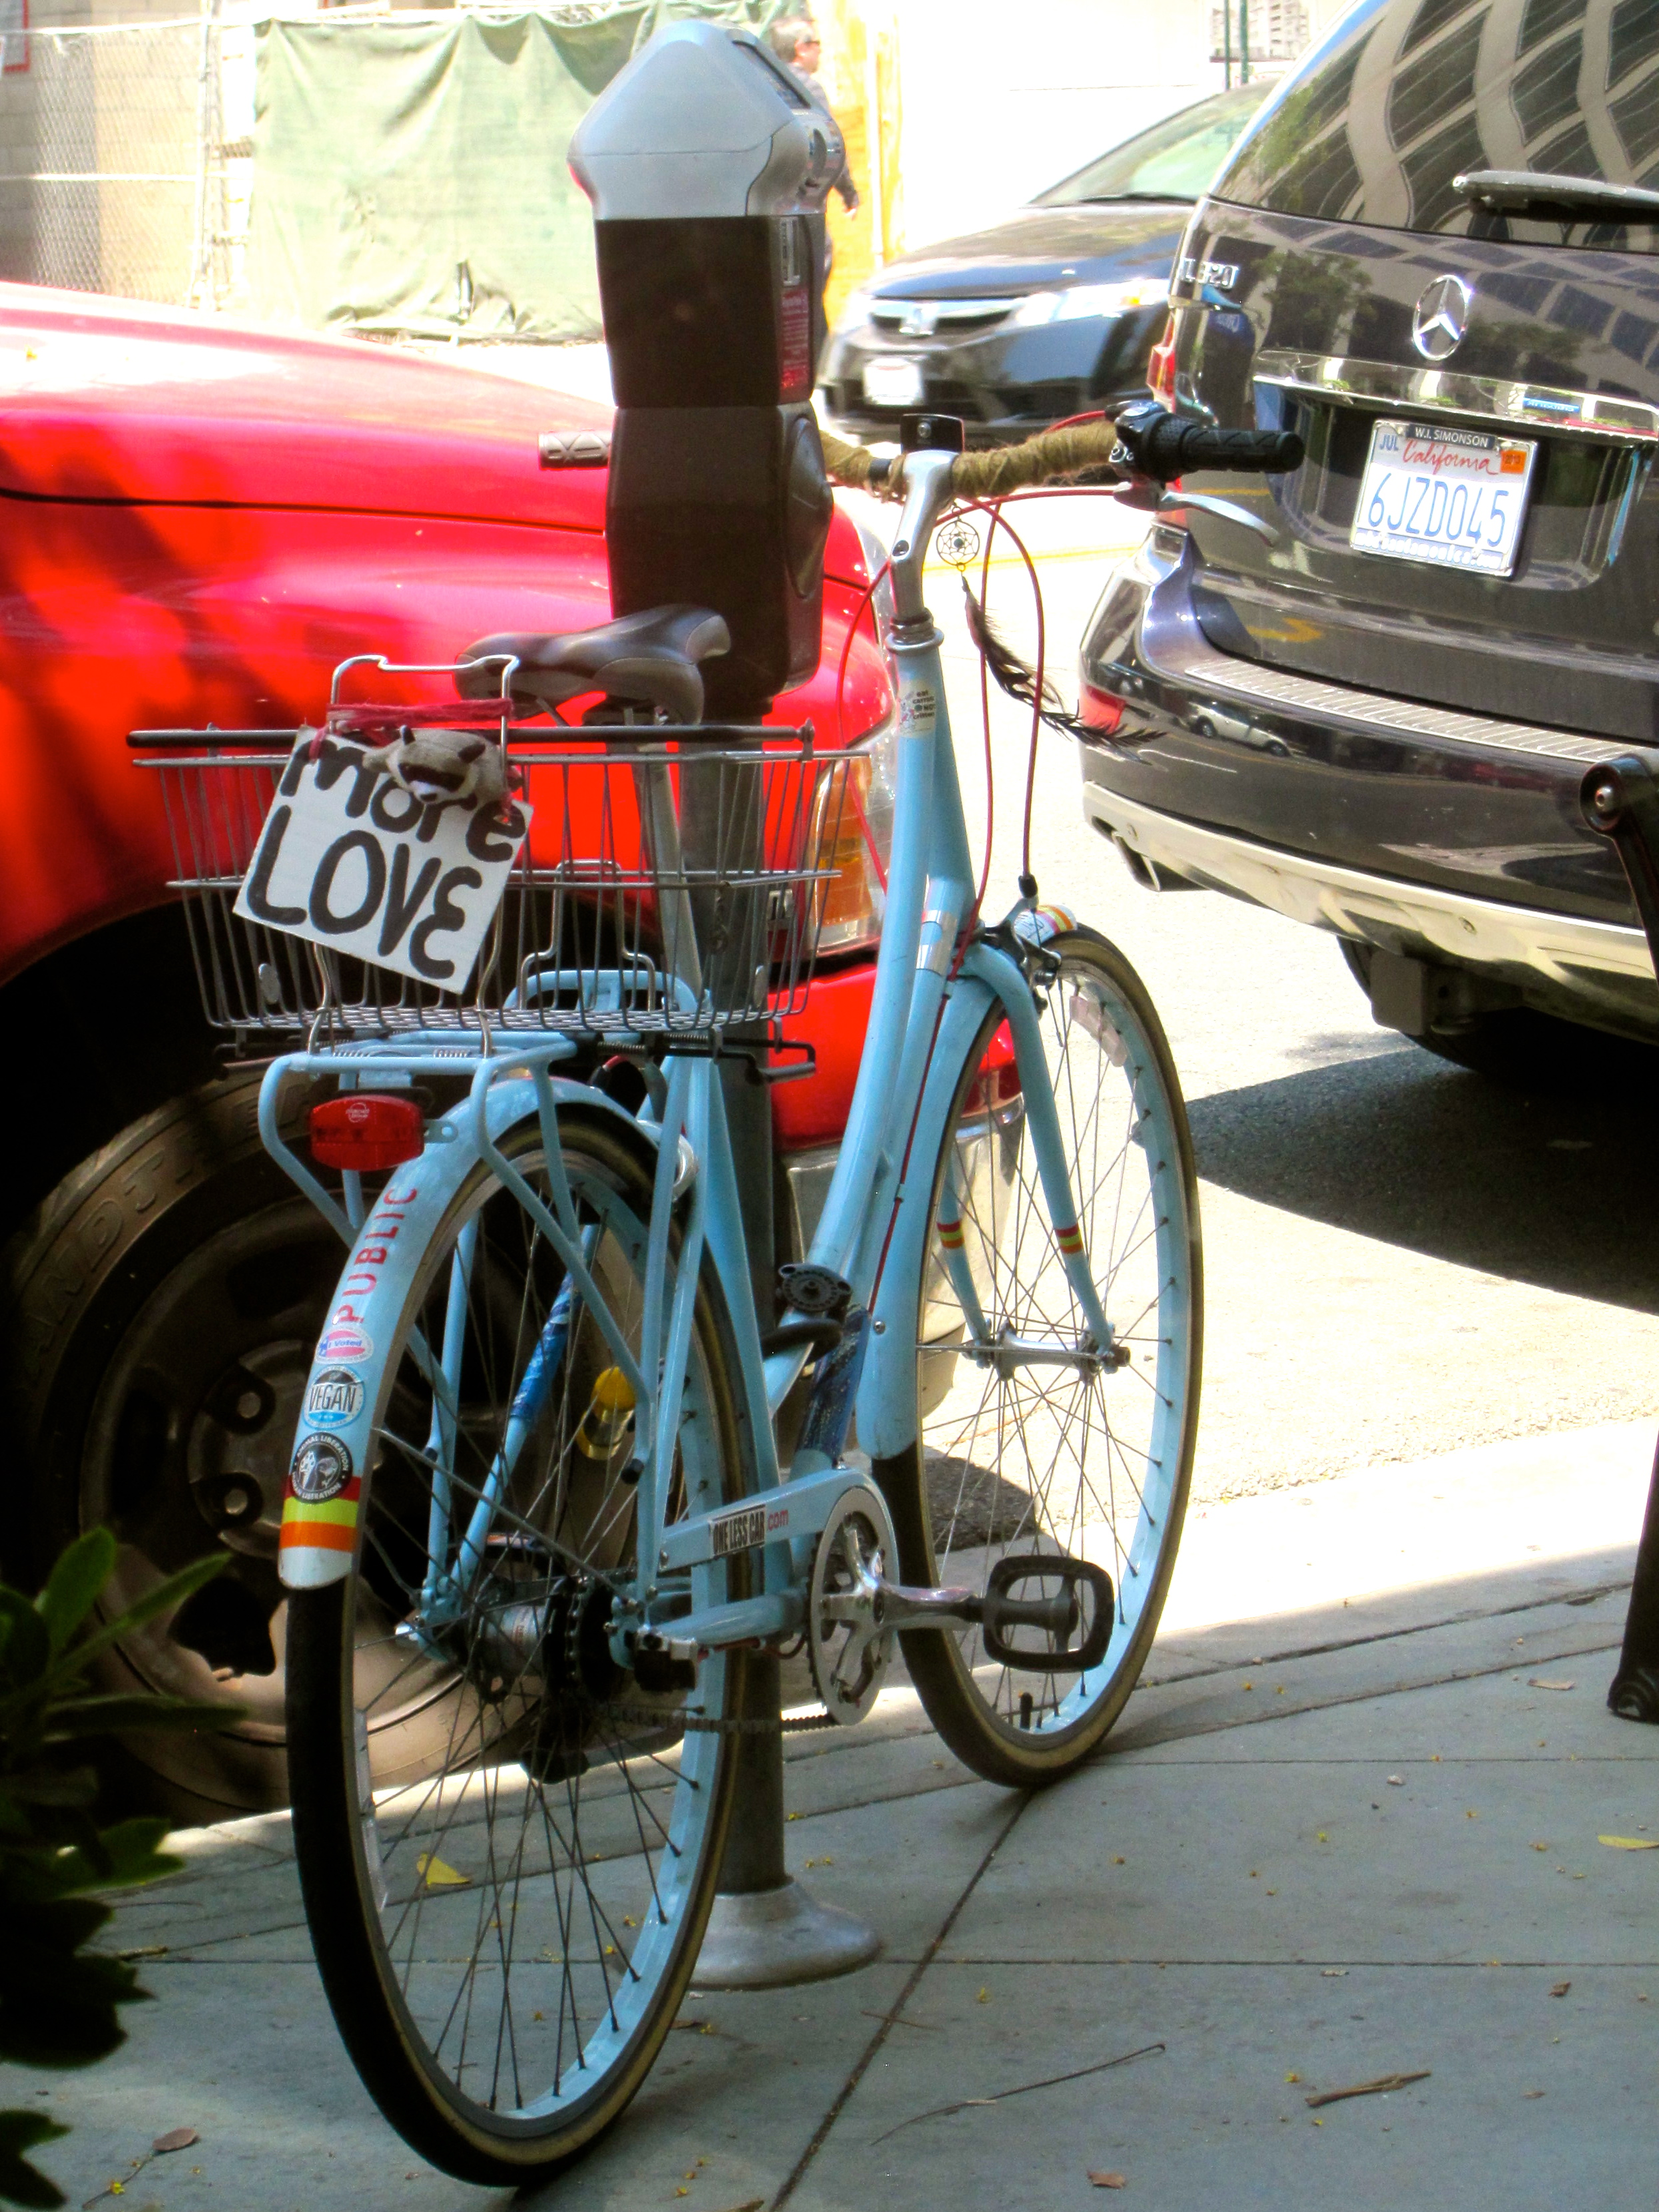 More love bicycle